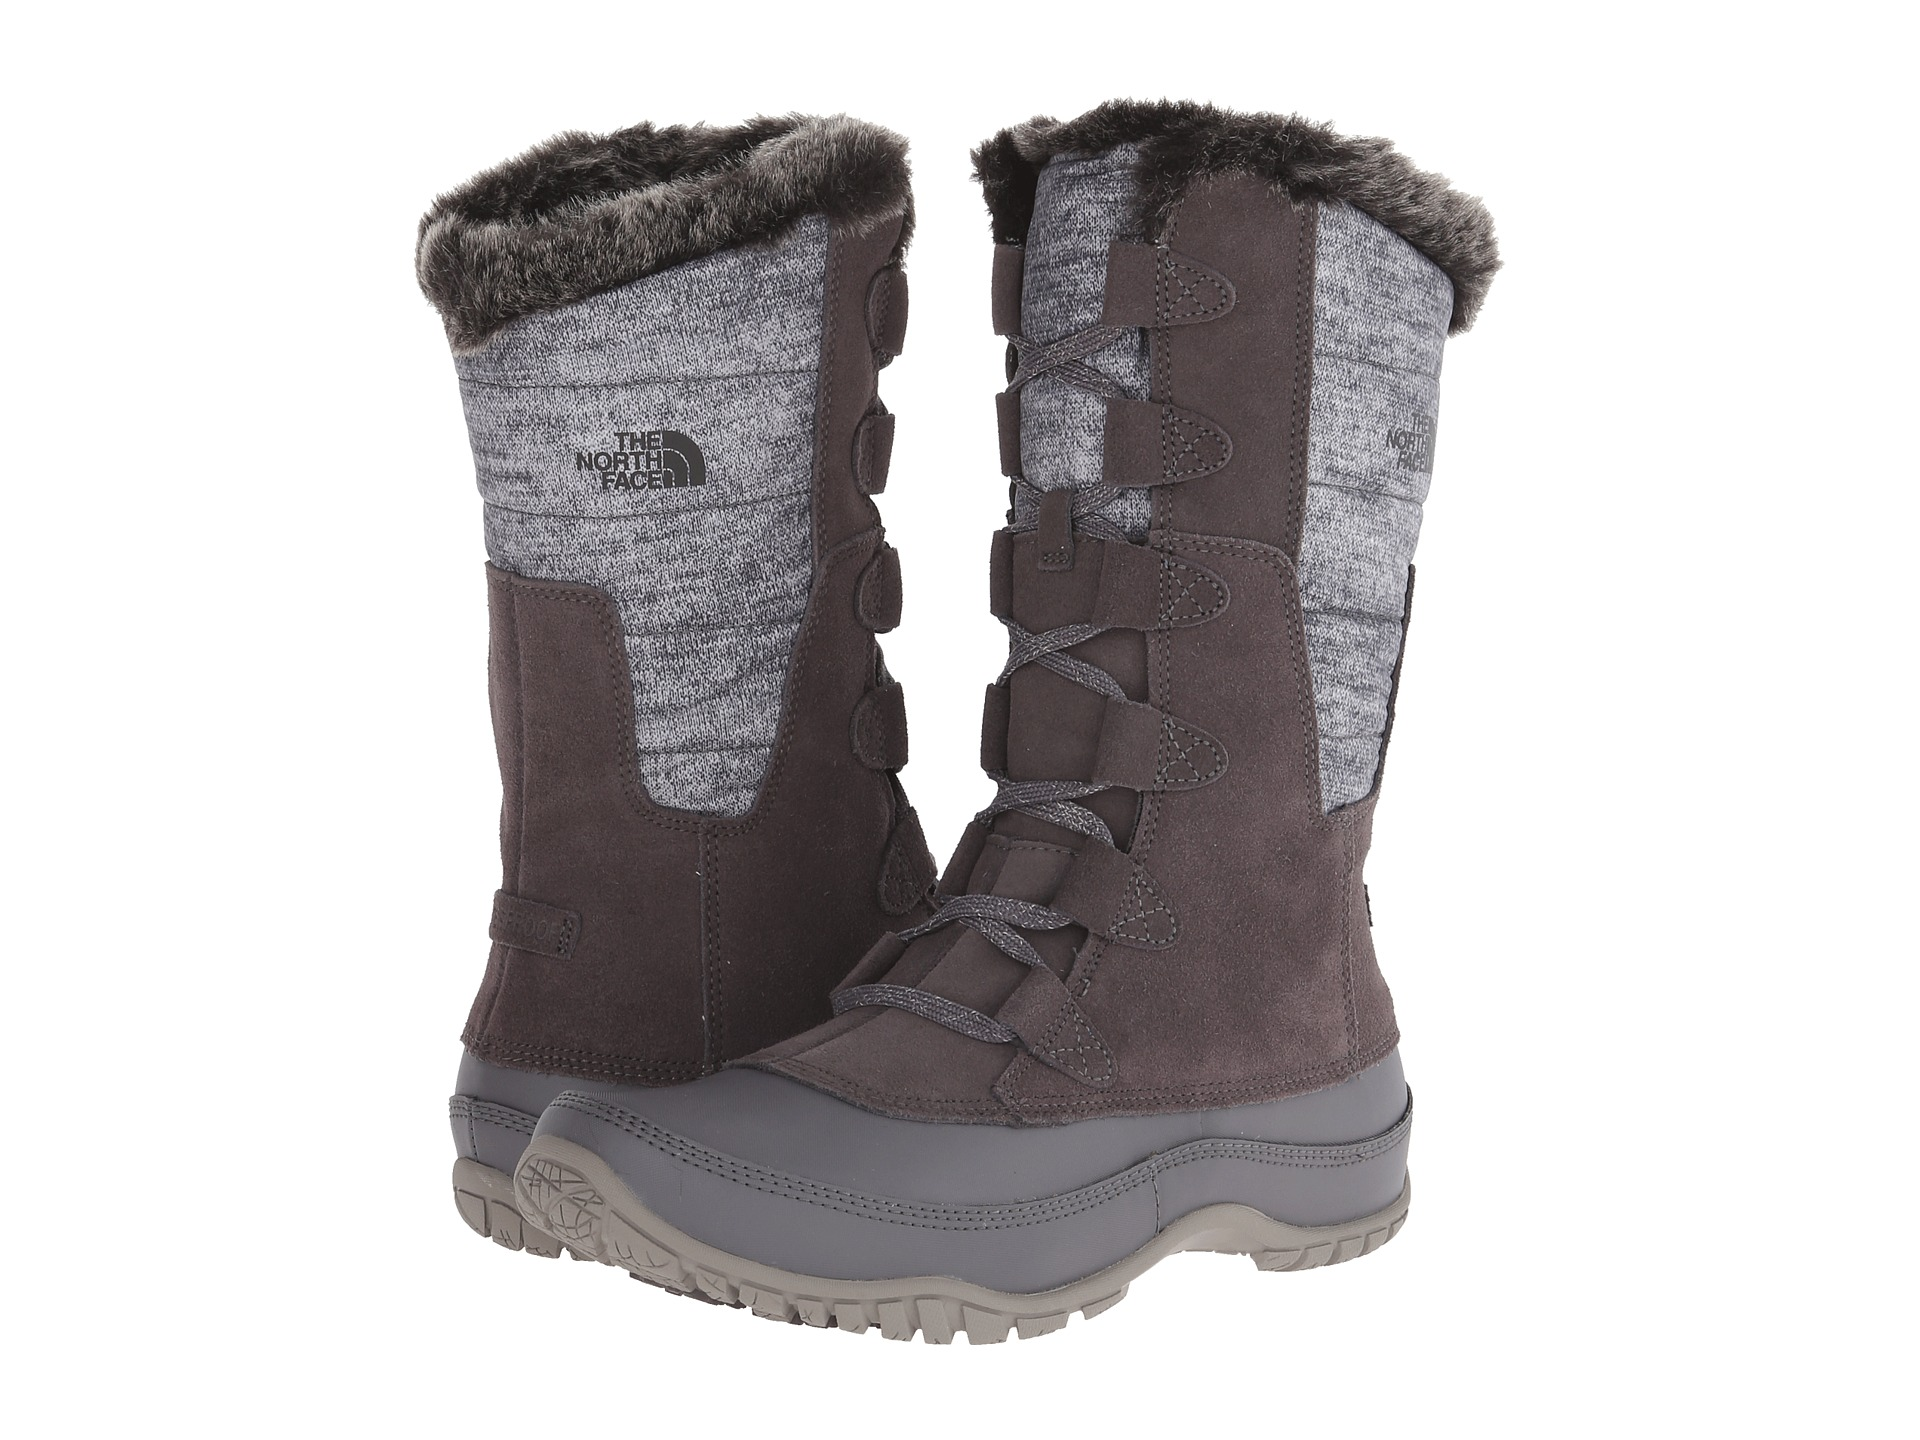 434cbd83f American genuine purchasing TheNorthFace north face ladies waterproof  leather plush collar snow boots Nuptse